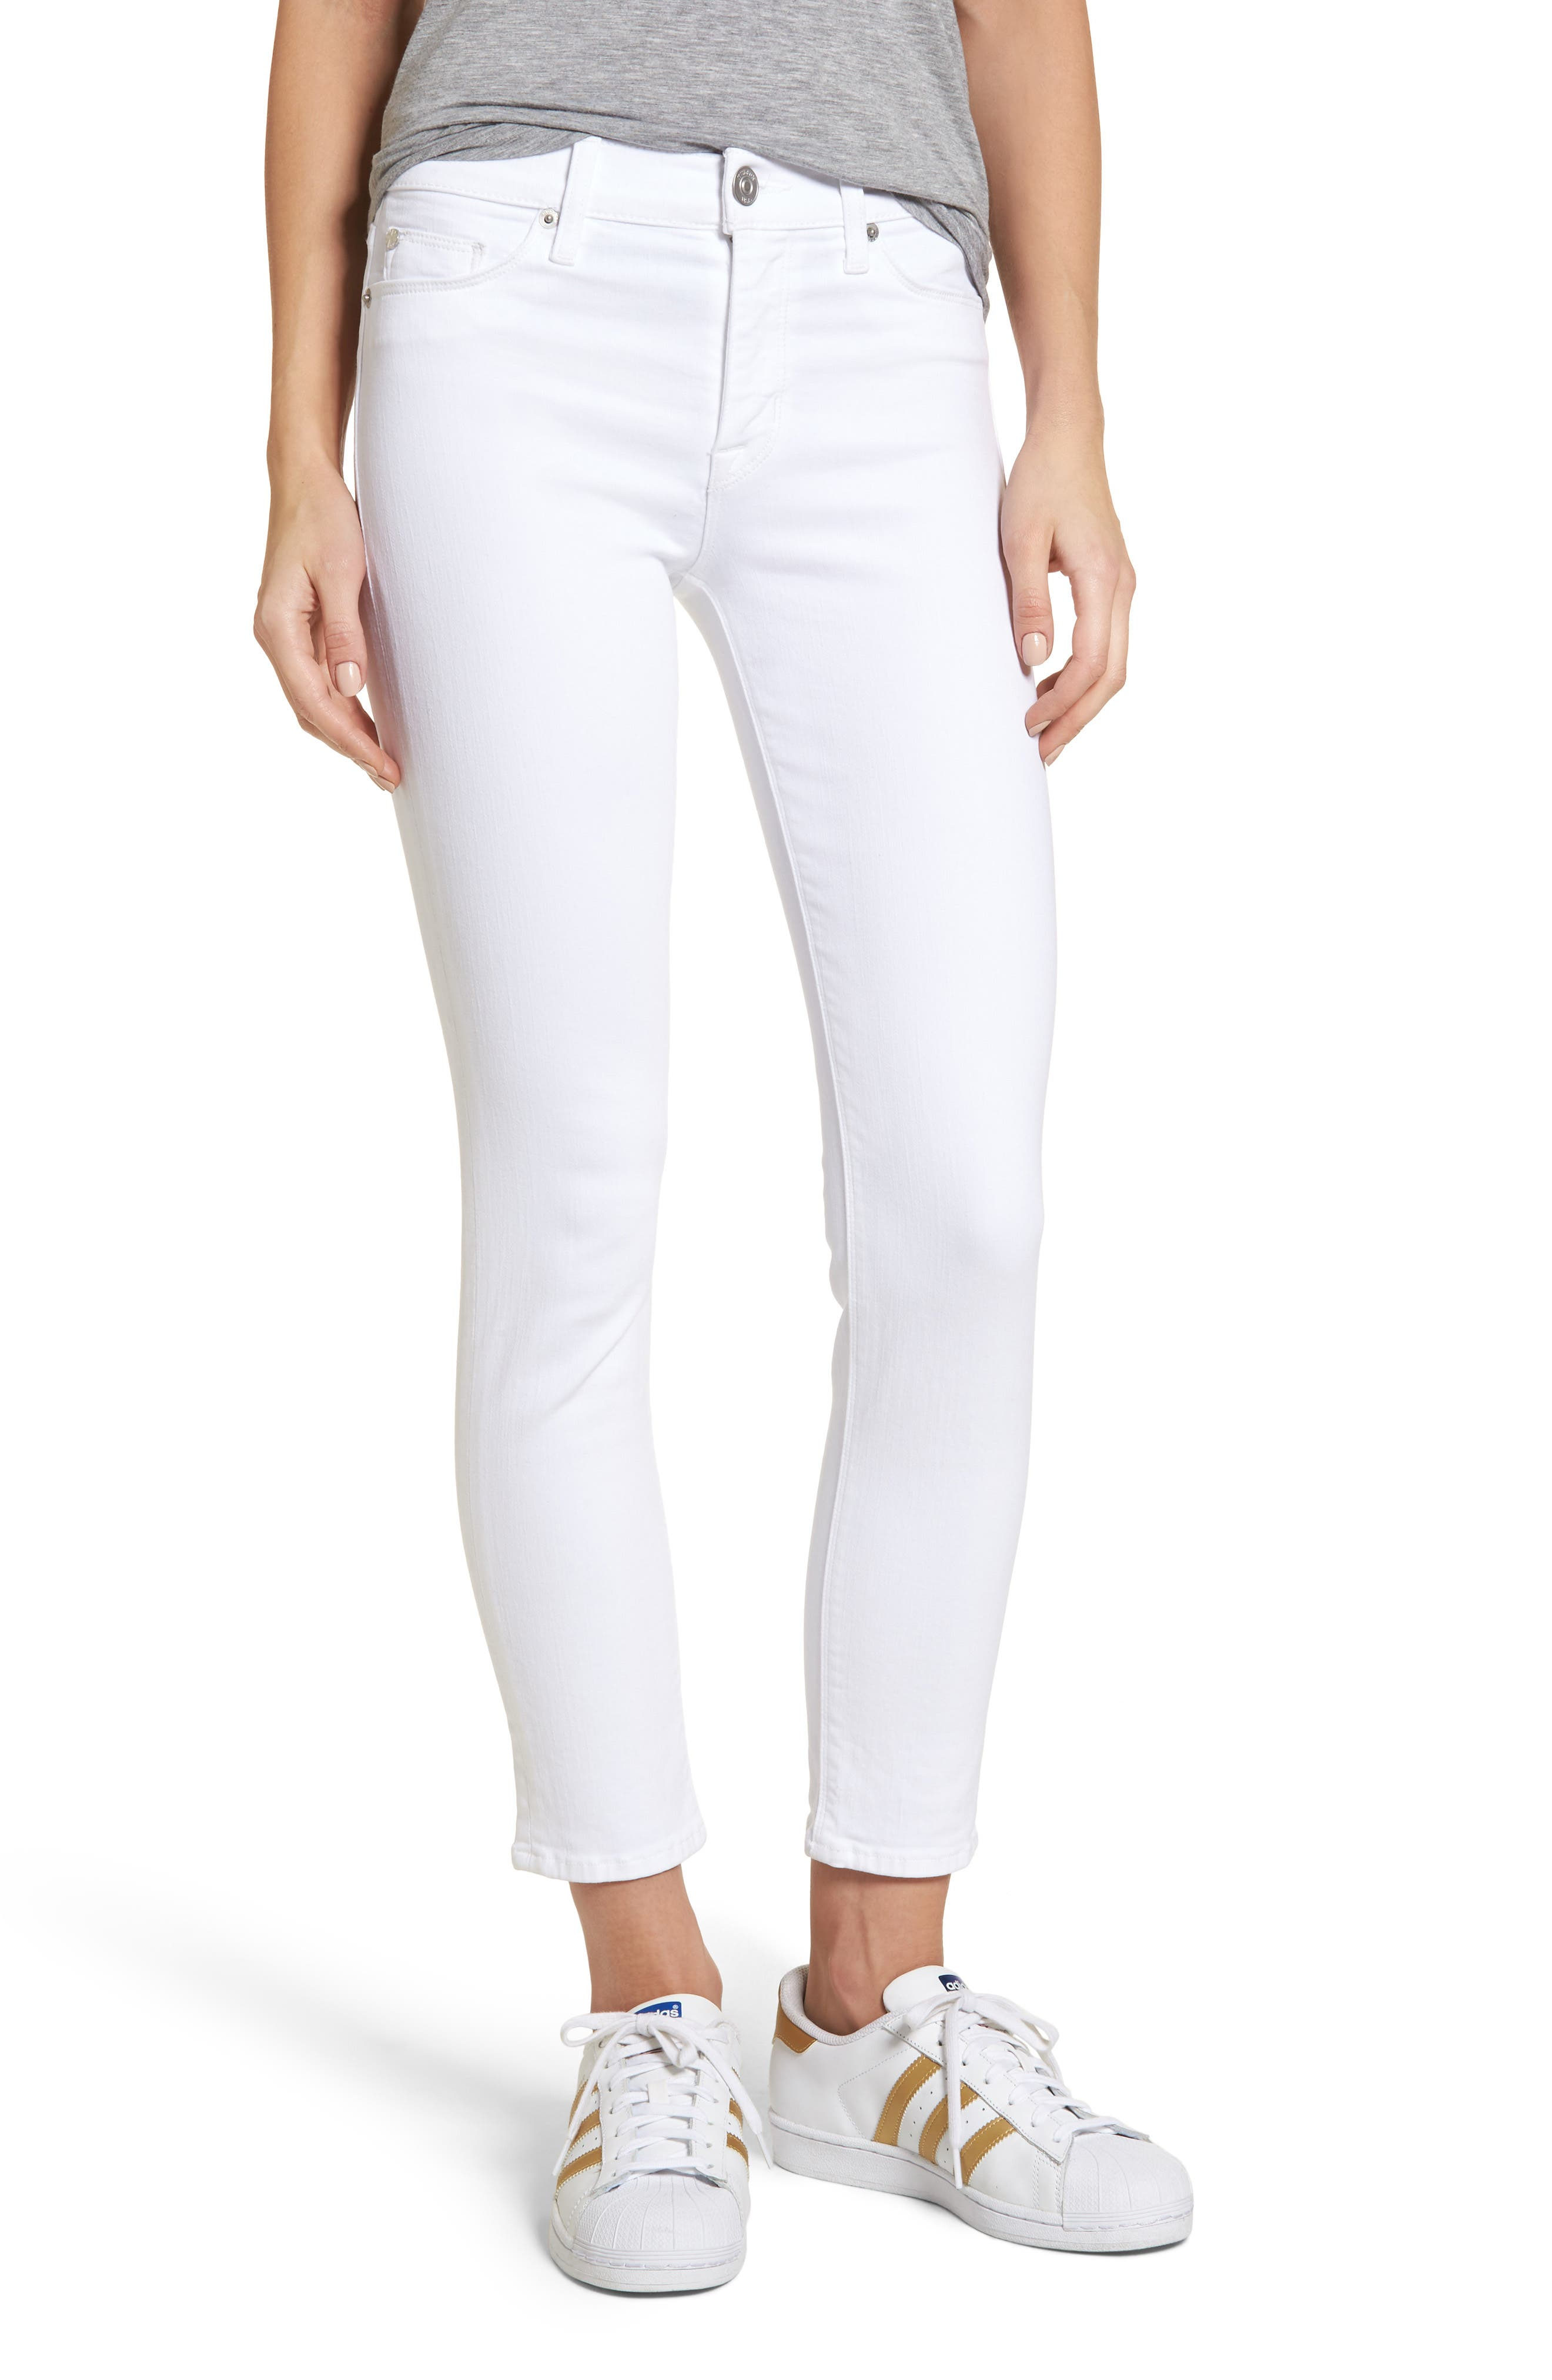 Main Image - Hudson Jeans Tally Ankle Skinny Jeans (Optical White)